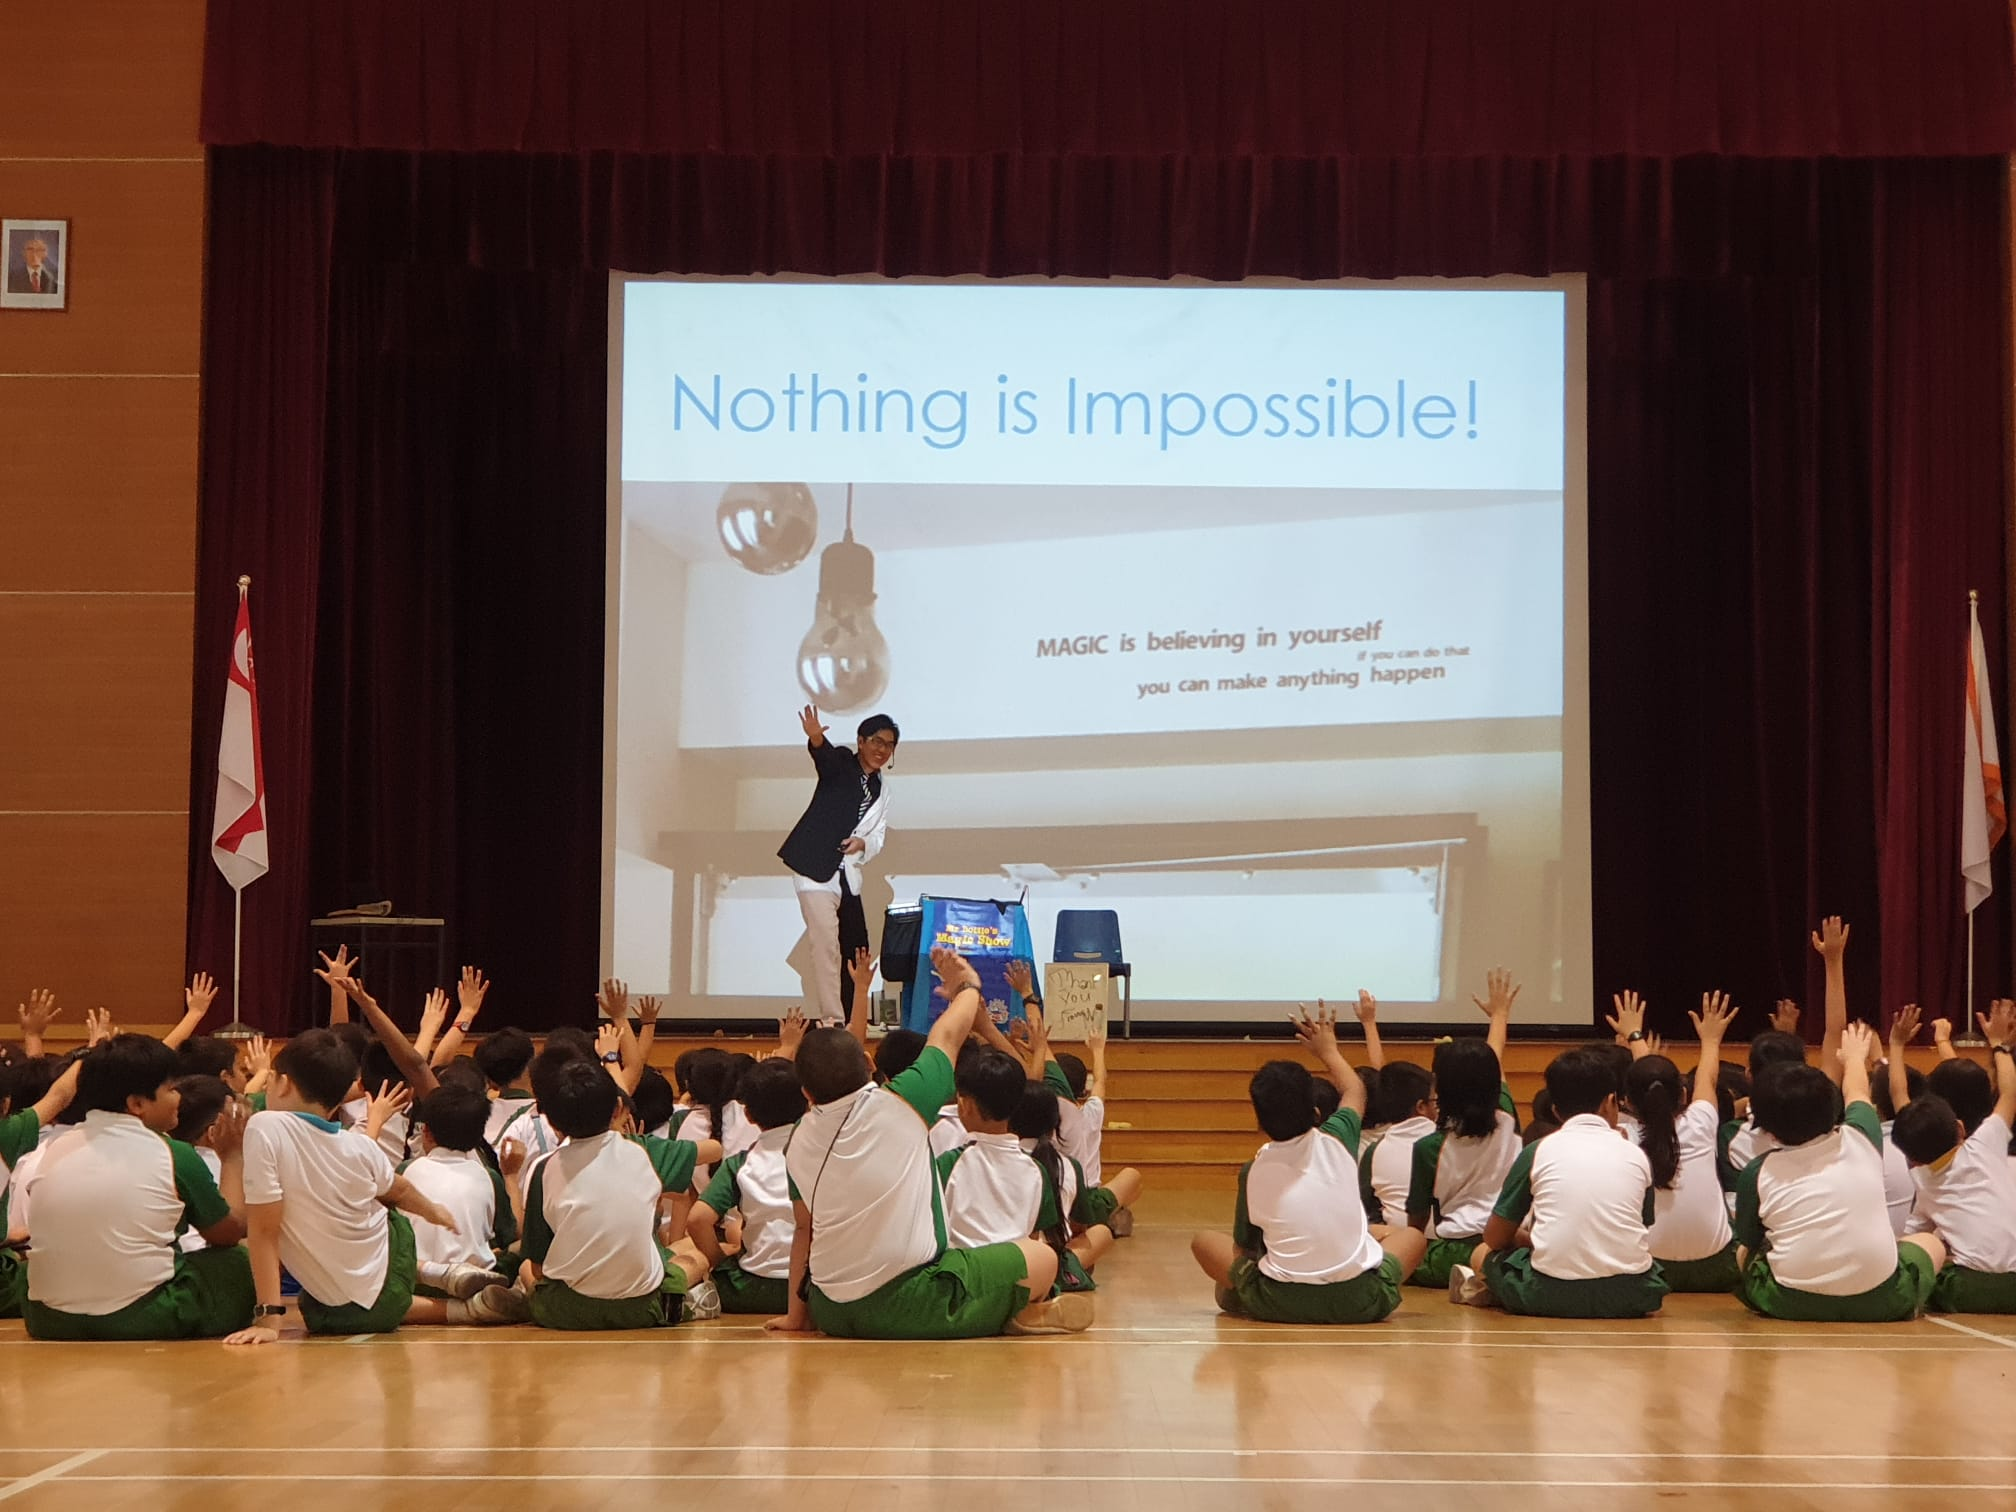 Nothing is impossible tedtalk to inspire children